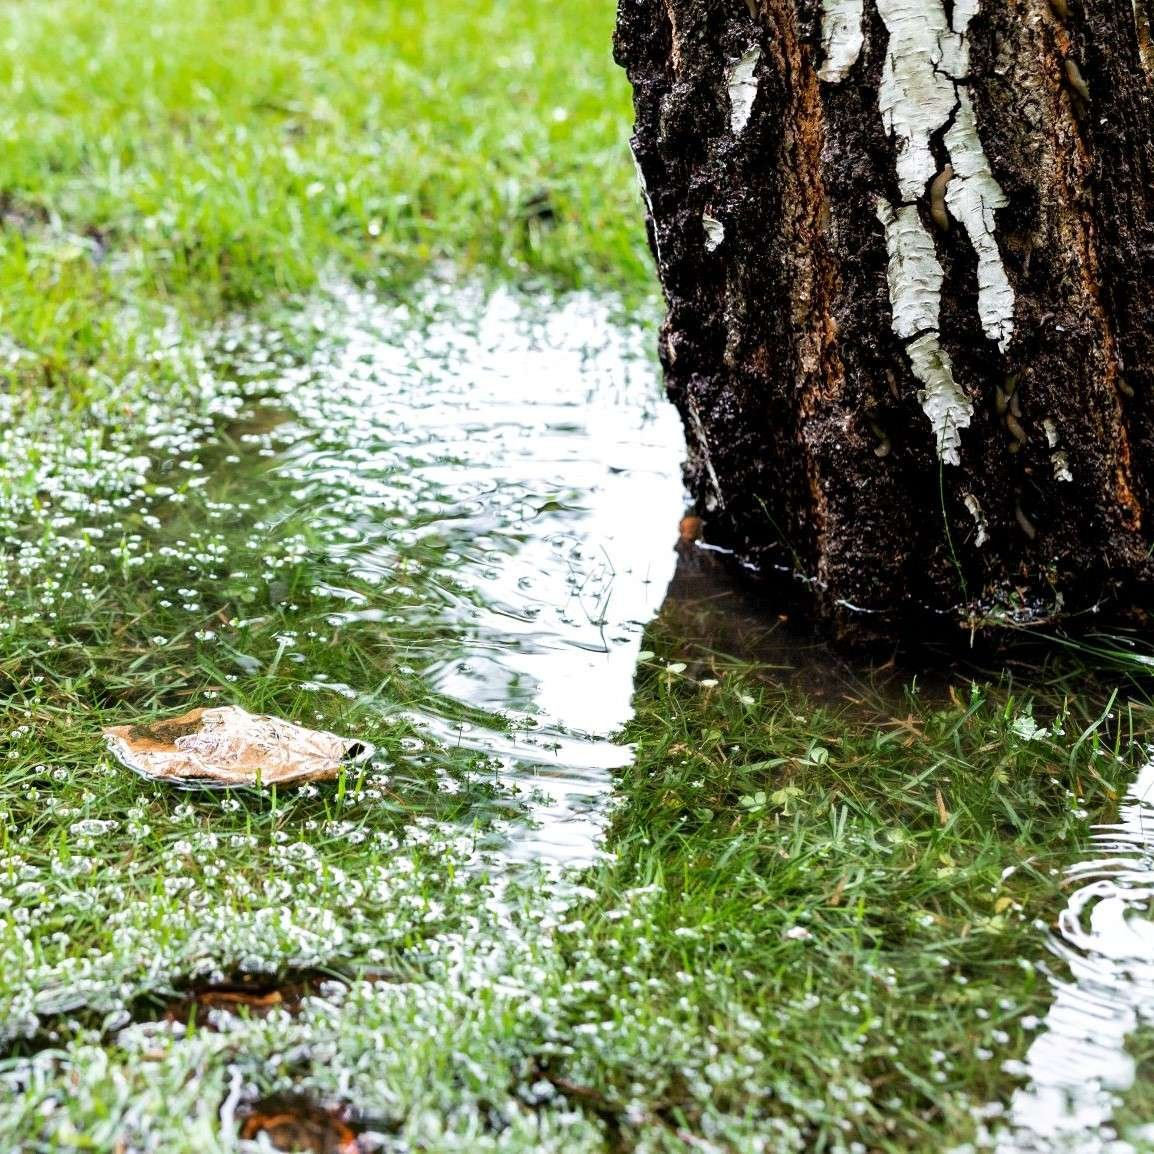 Base of Tree in Puddle of Water